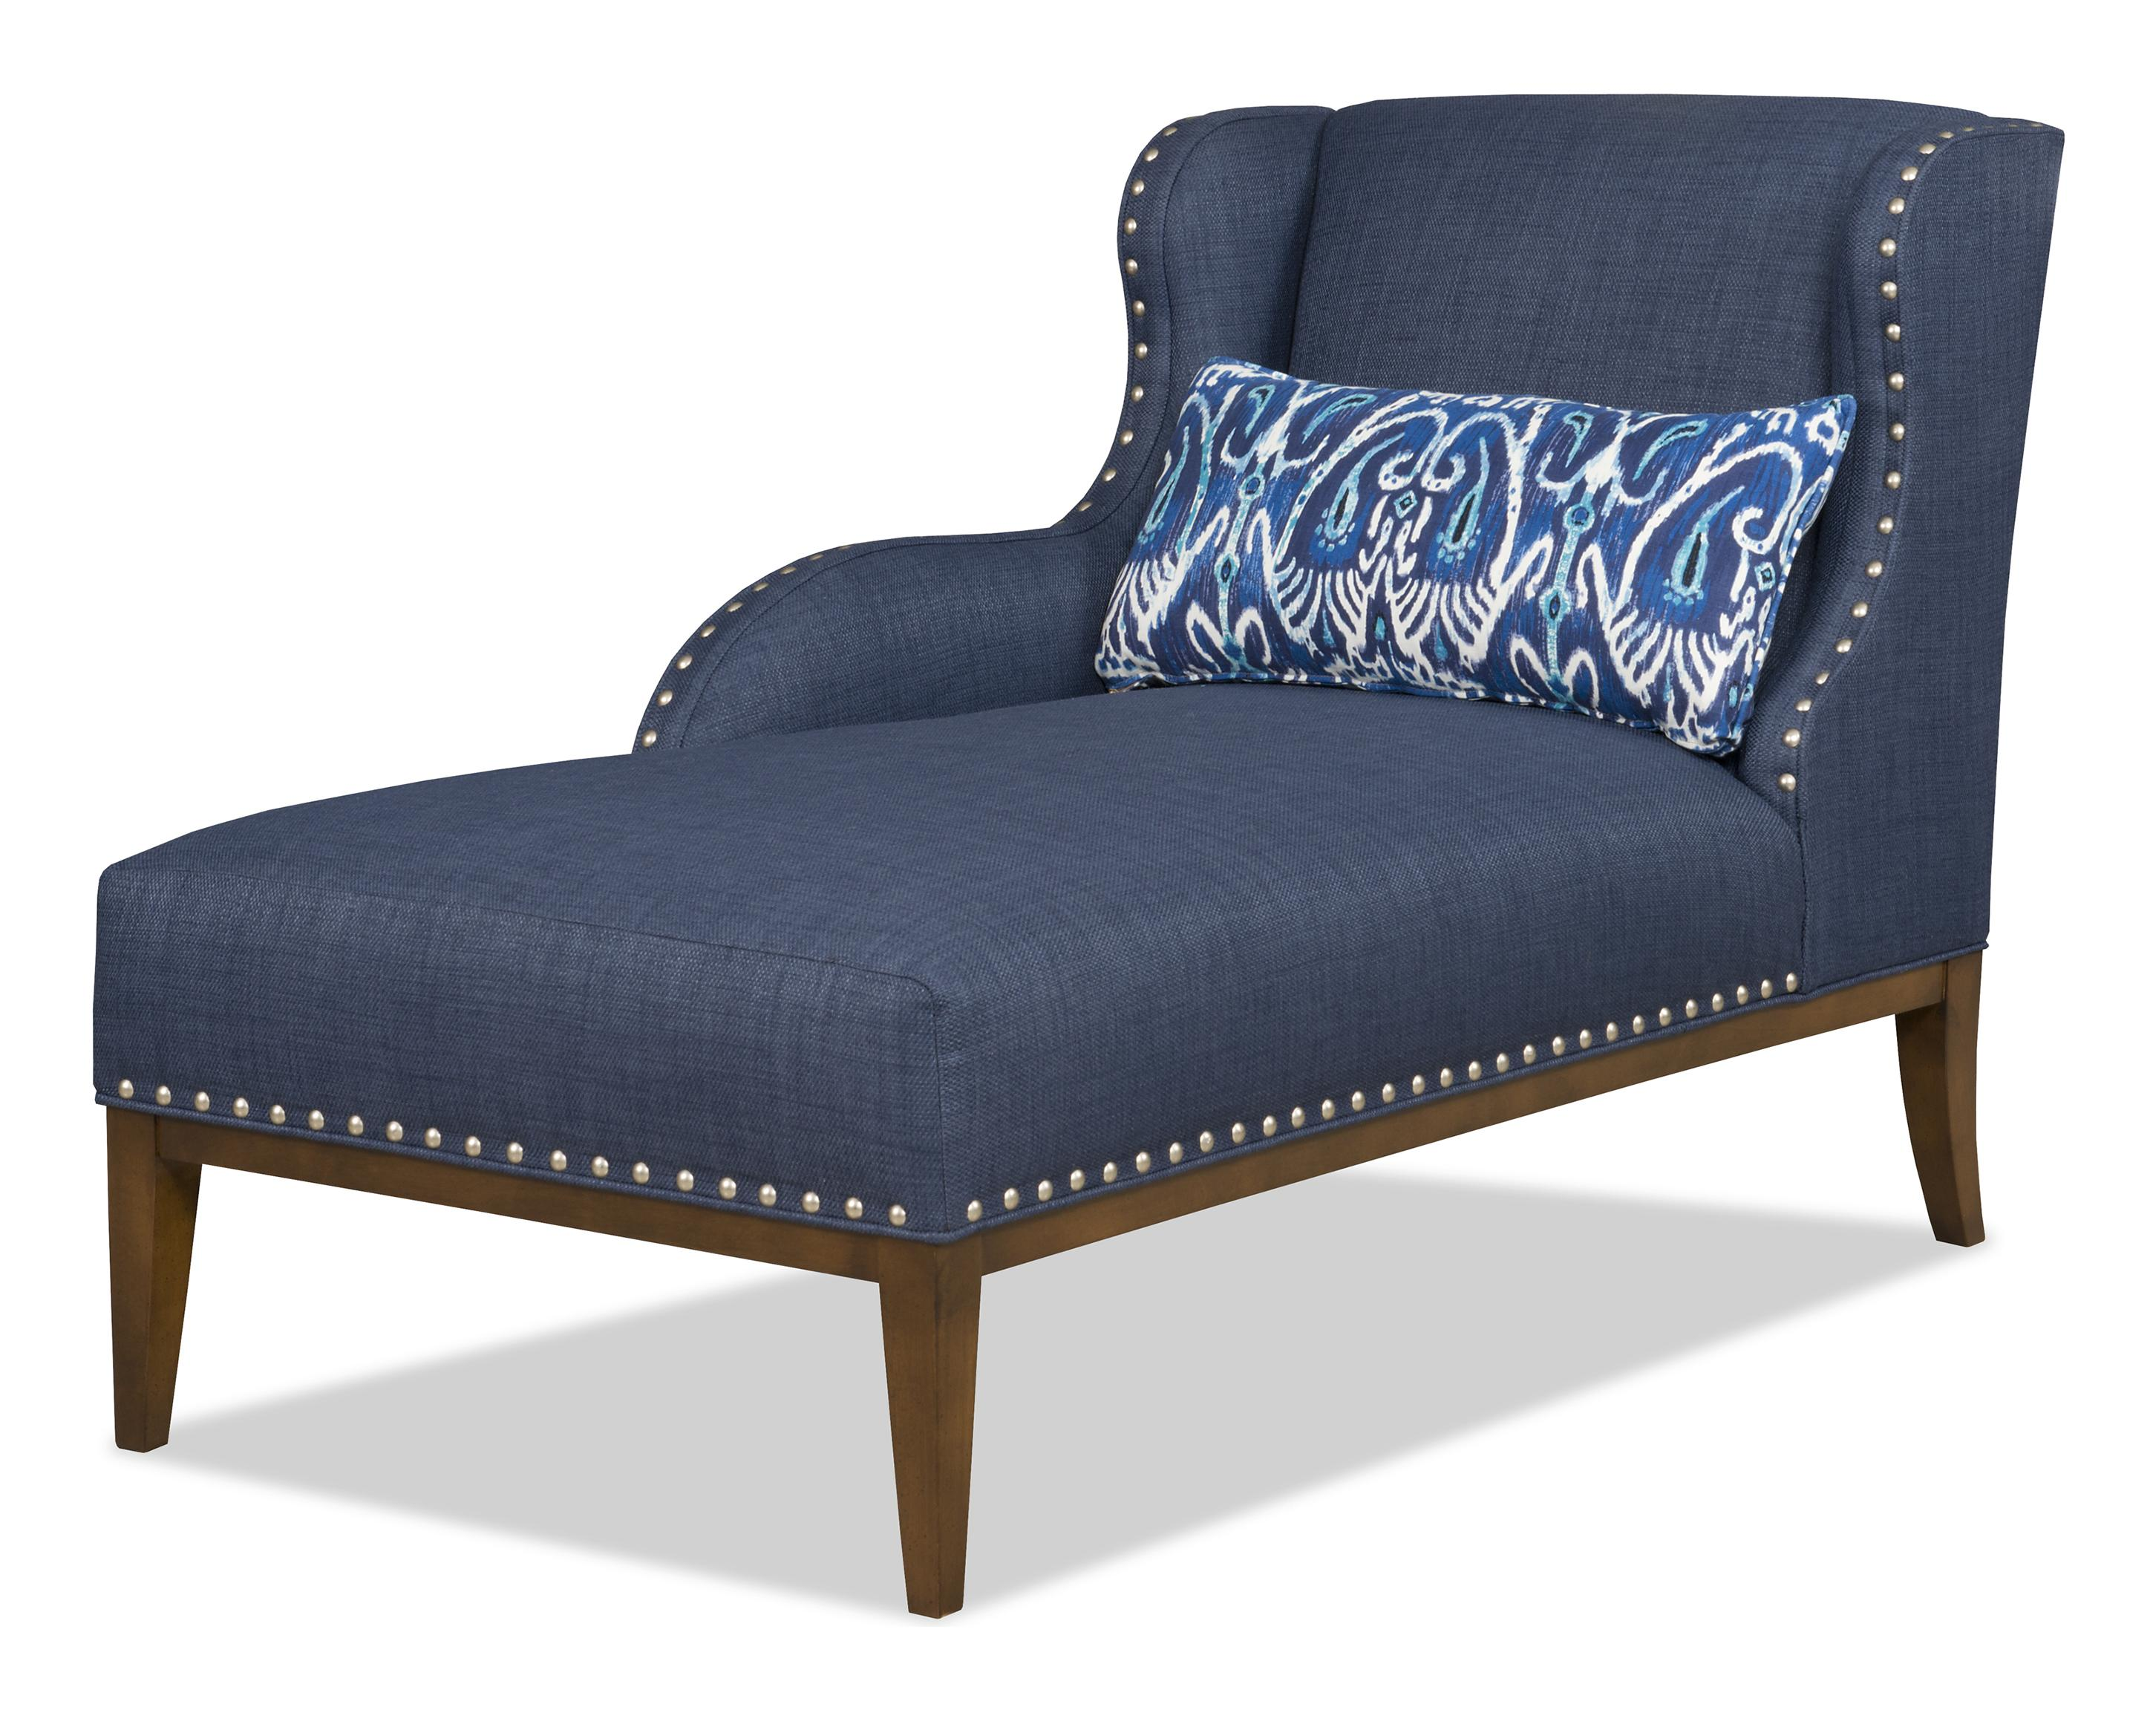 Transitional Laf One Arm Chaise With Nailhead Trim By Sam Moore